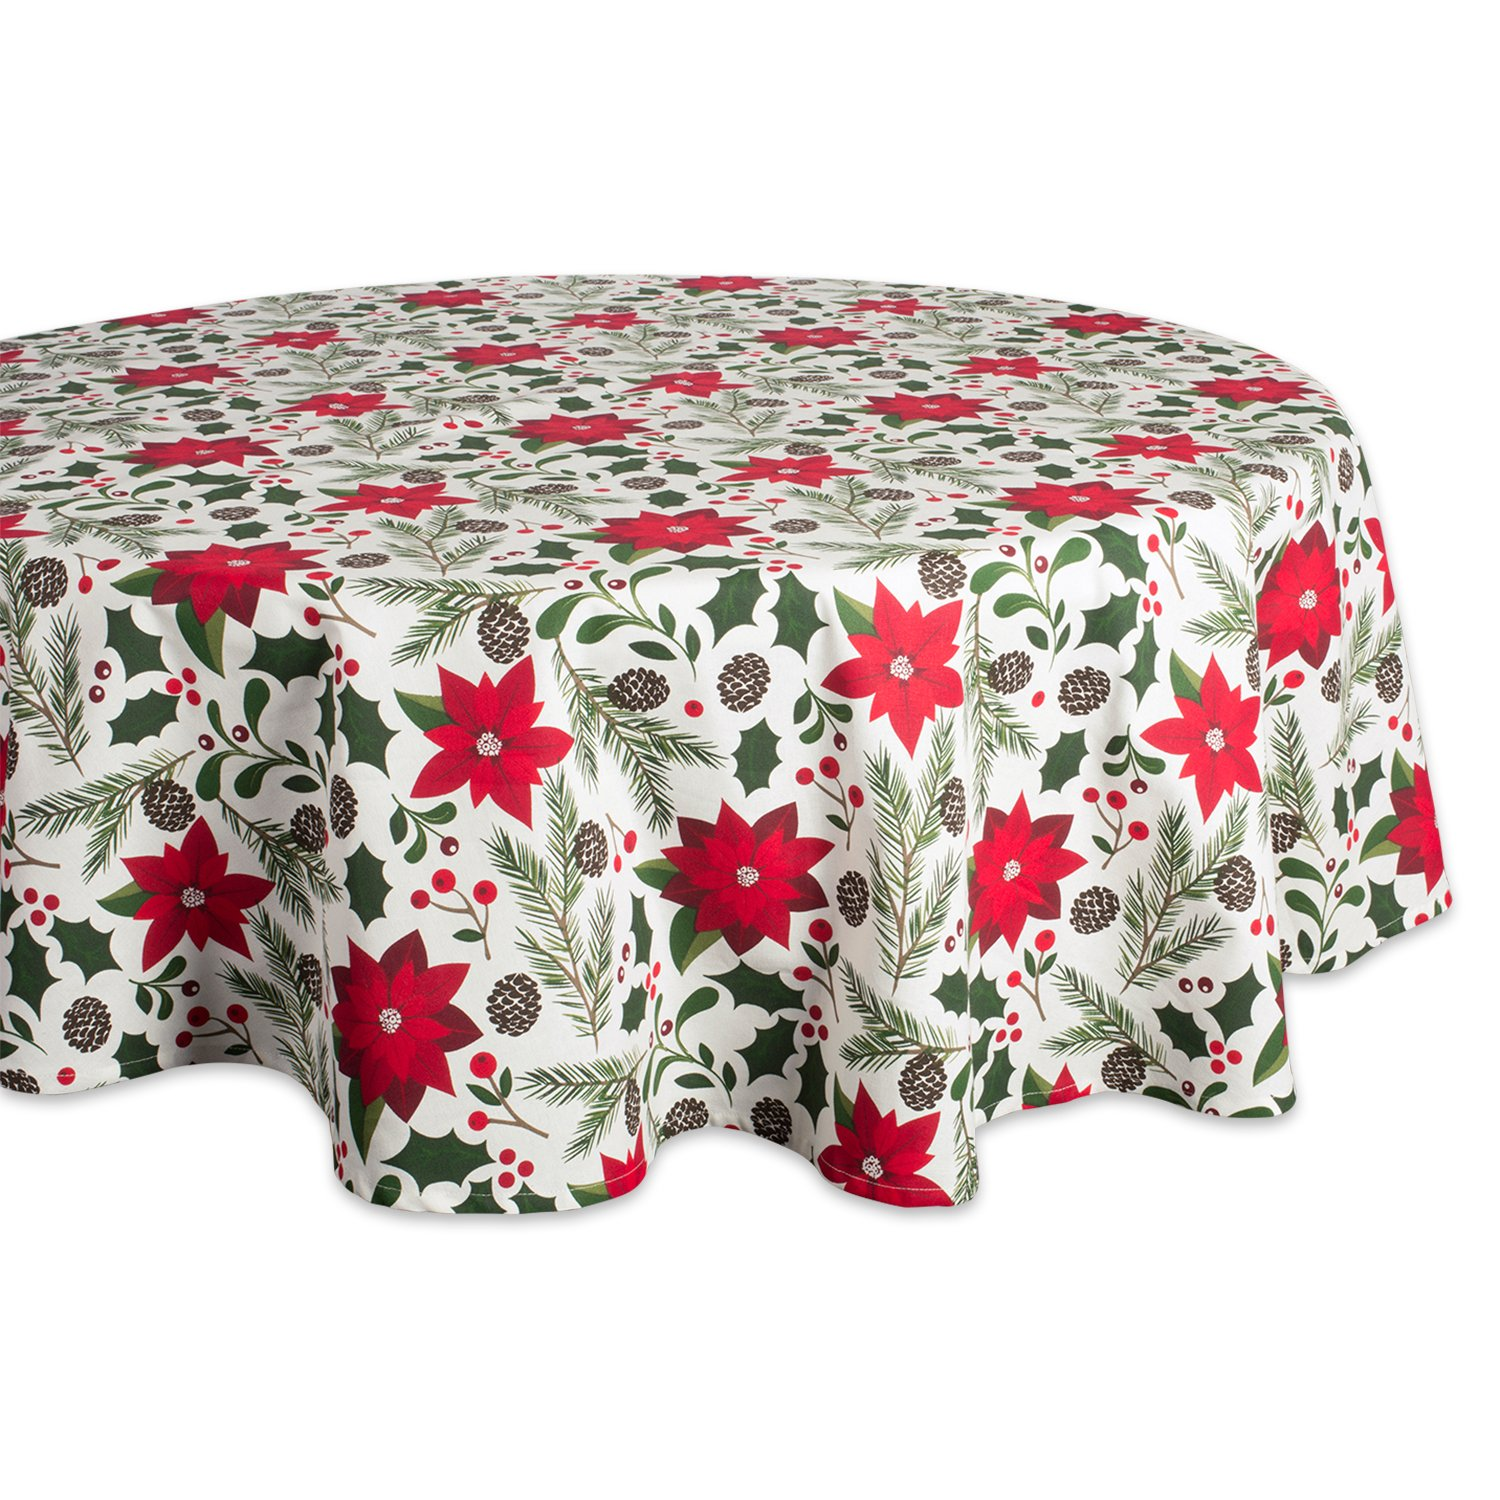 """DII 100% Cotton, Machine Washable, Dinner and Holiday Tablecloth - 70"""" Round, Seats 4-6 People, Woodland Christmas"""